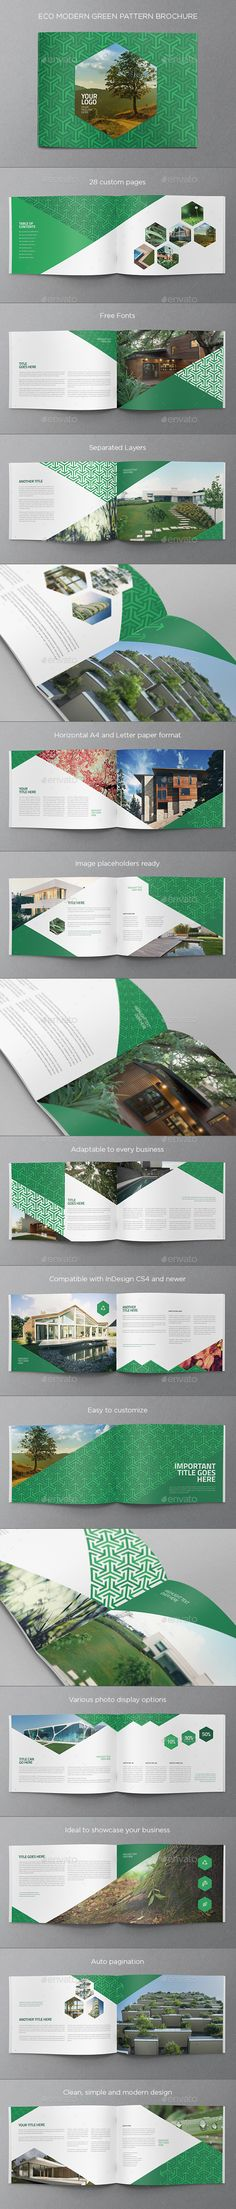 Eco Modern Green Pattern Brochure Template InDesign INDD. Download here: http://graphicriver.net/item/eco-modern-green-pattern-brochure/16298983?ref=ksioks